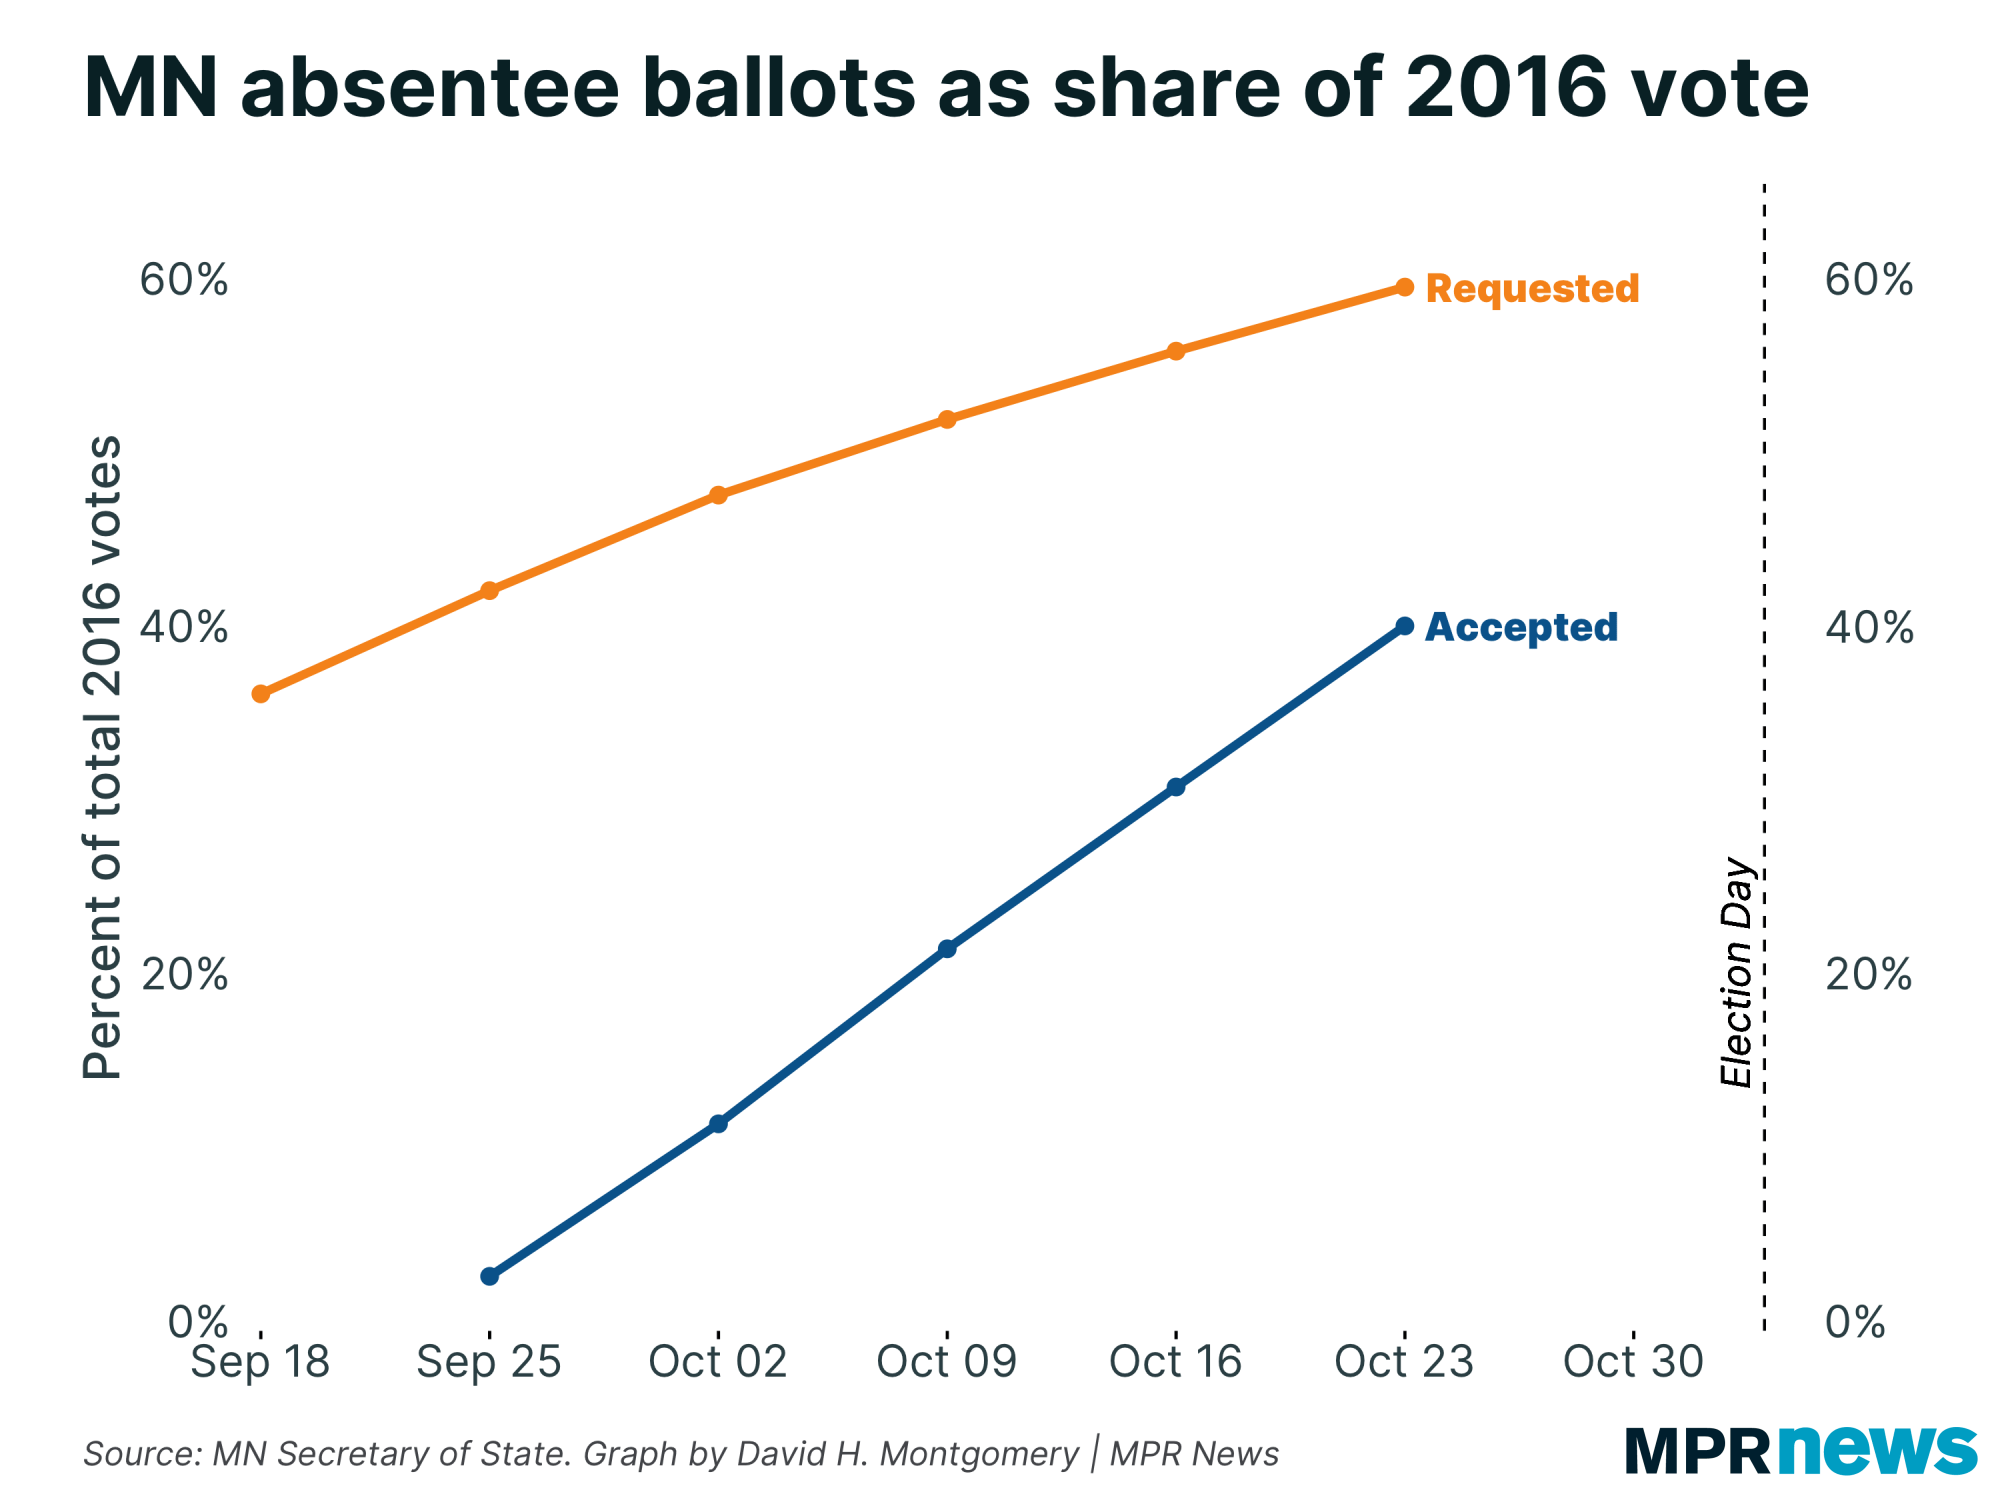 2020 absentee ballots over time, as share of 2016 voter turnout